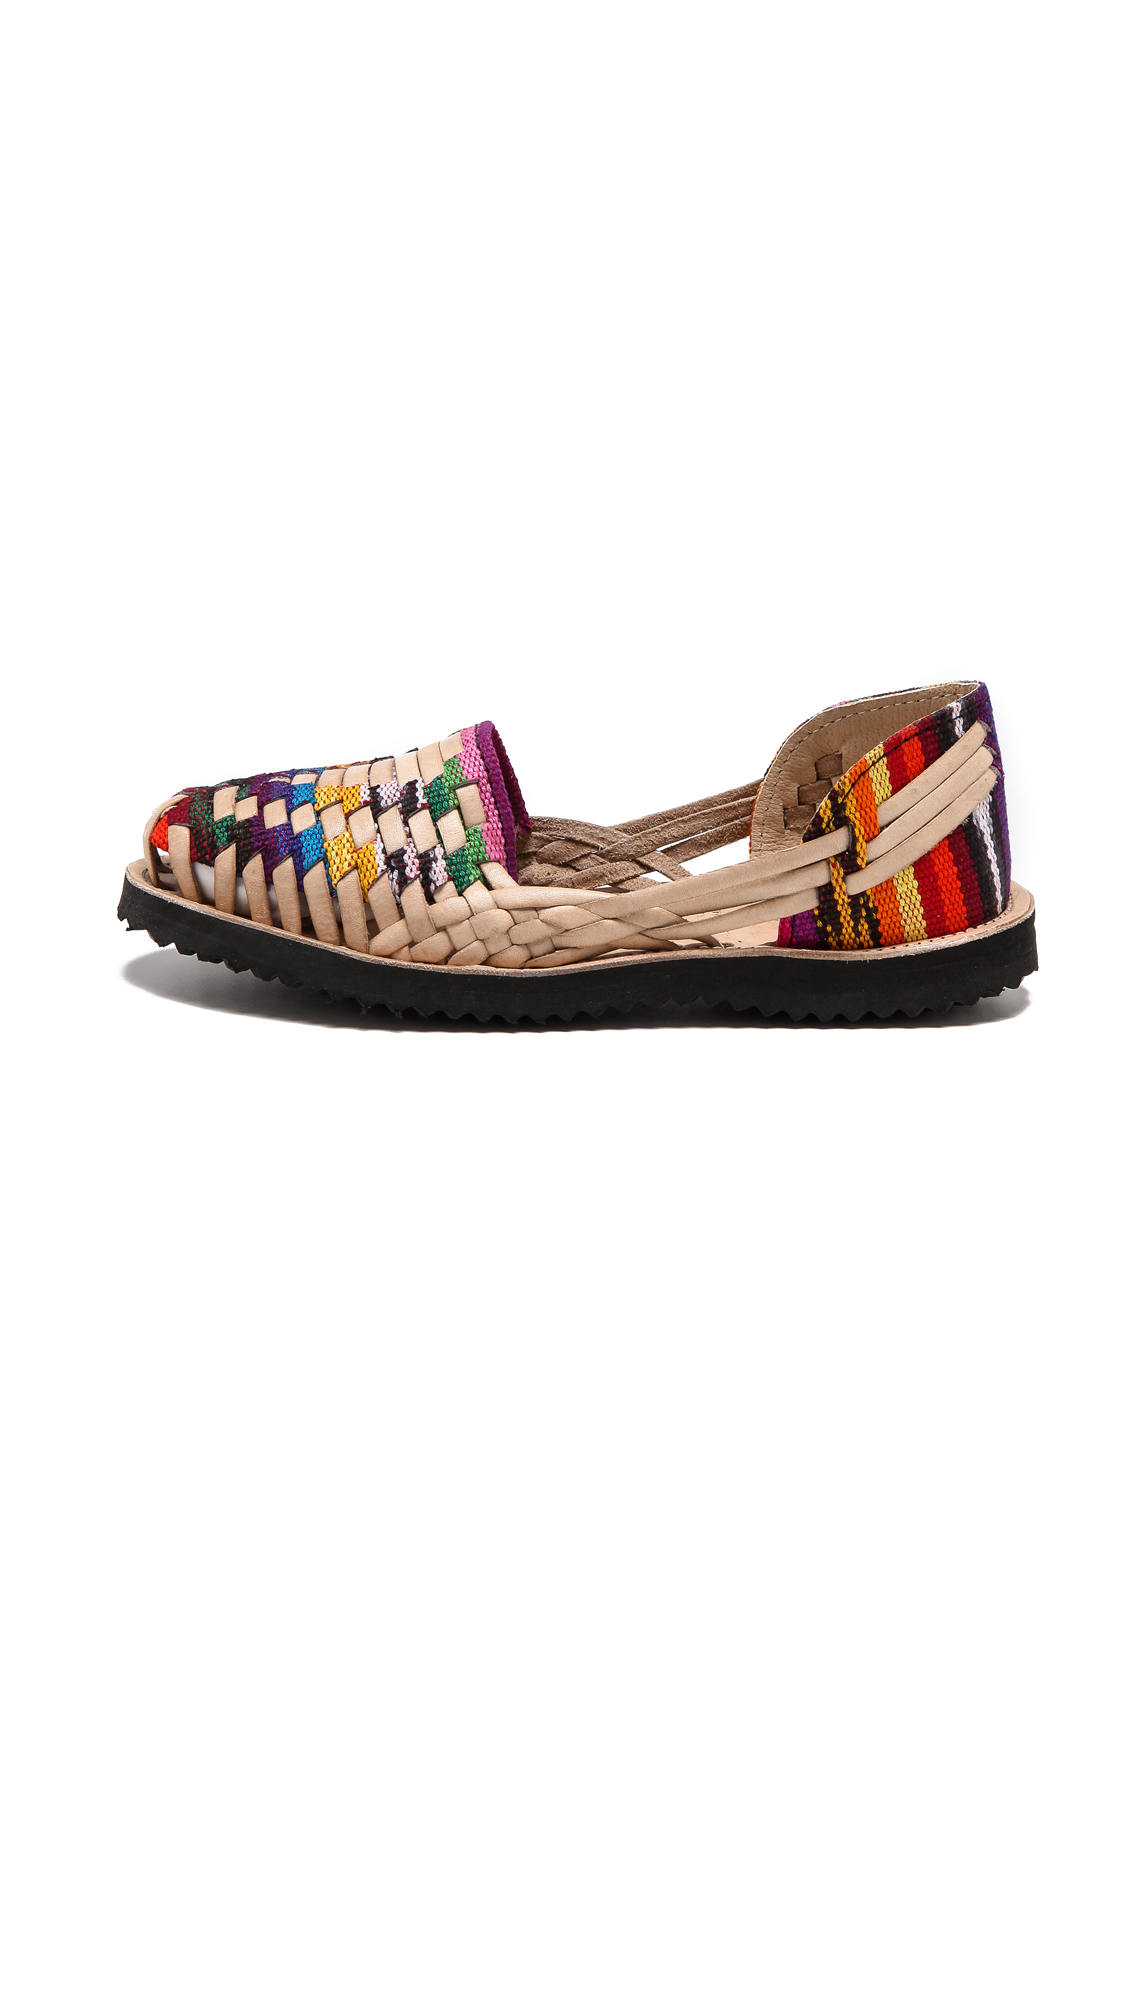 7155d8876a1b Lyst - Ix Style Woven Leather Huarache Flats - Traditional Mayan in ...